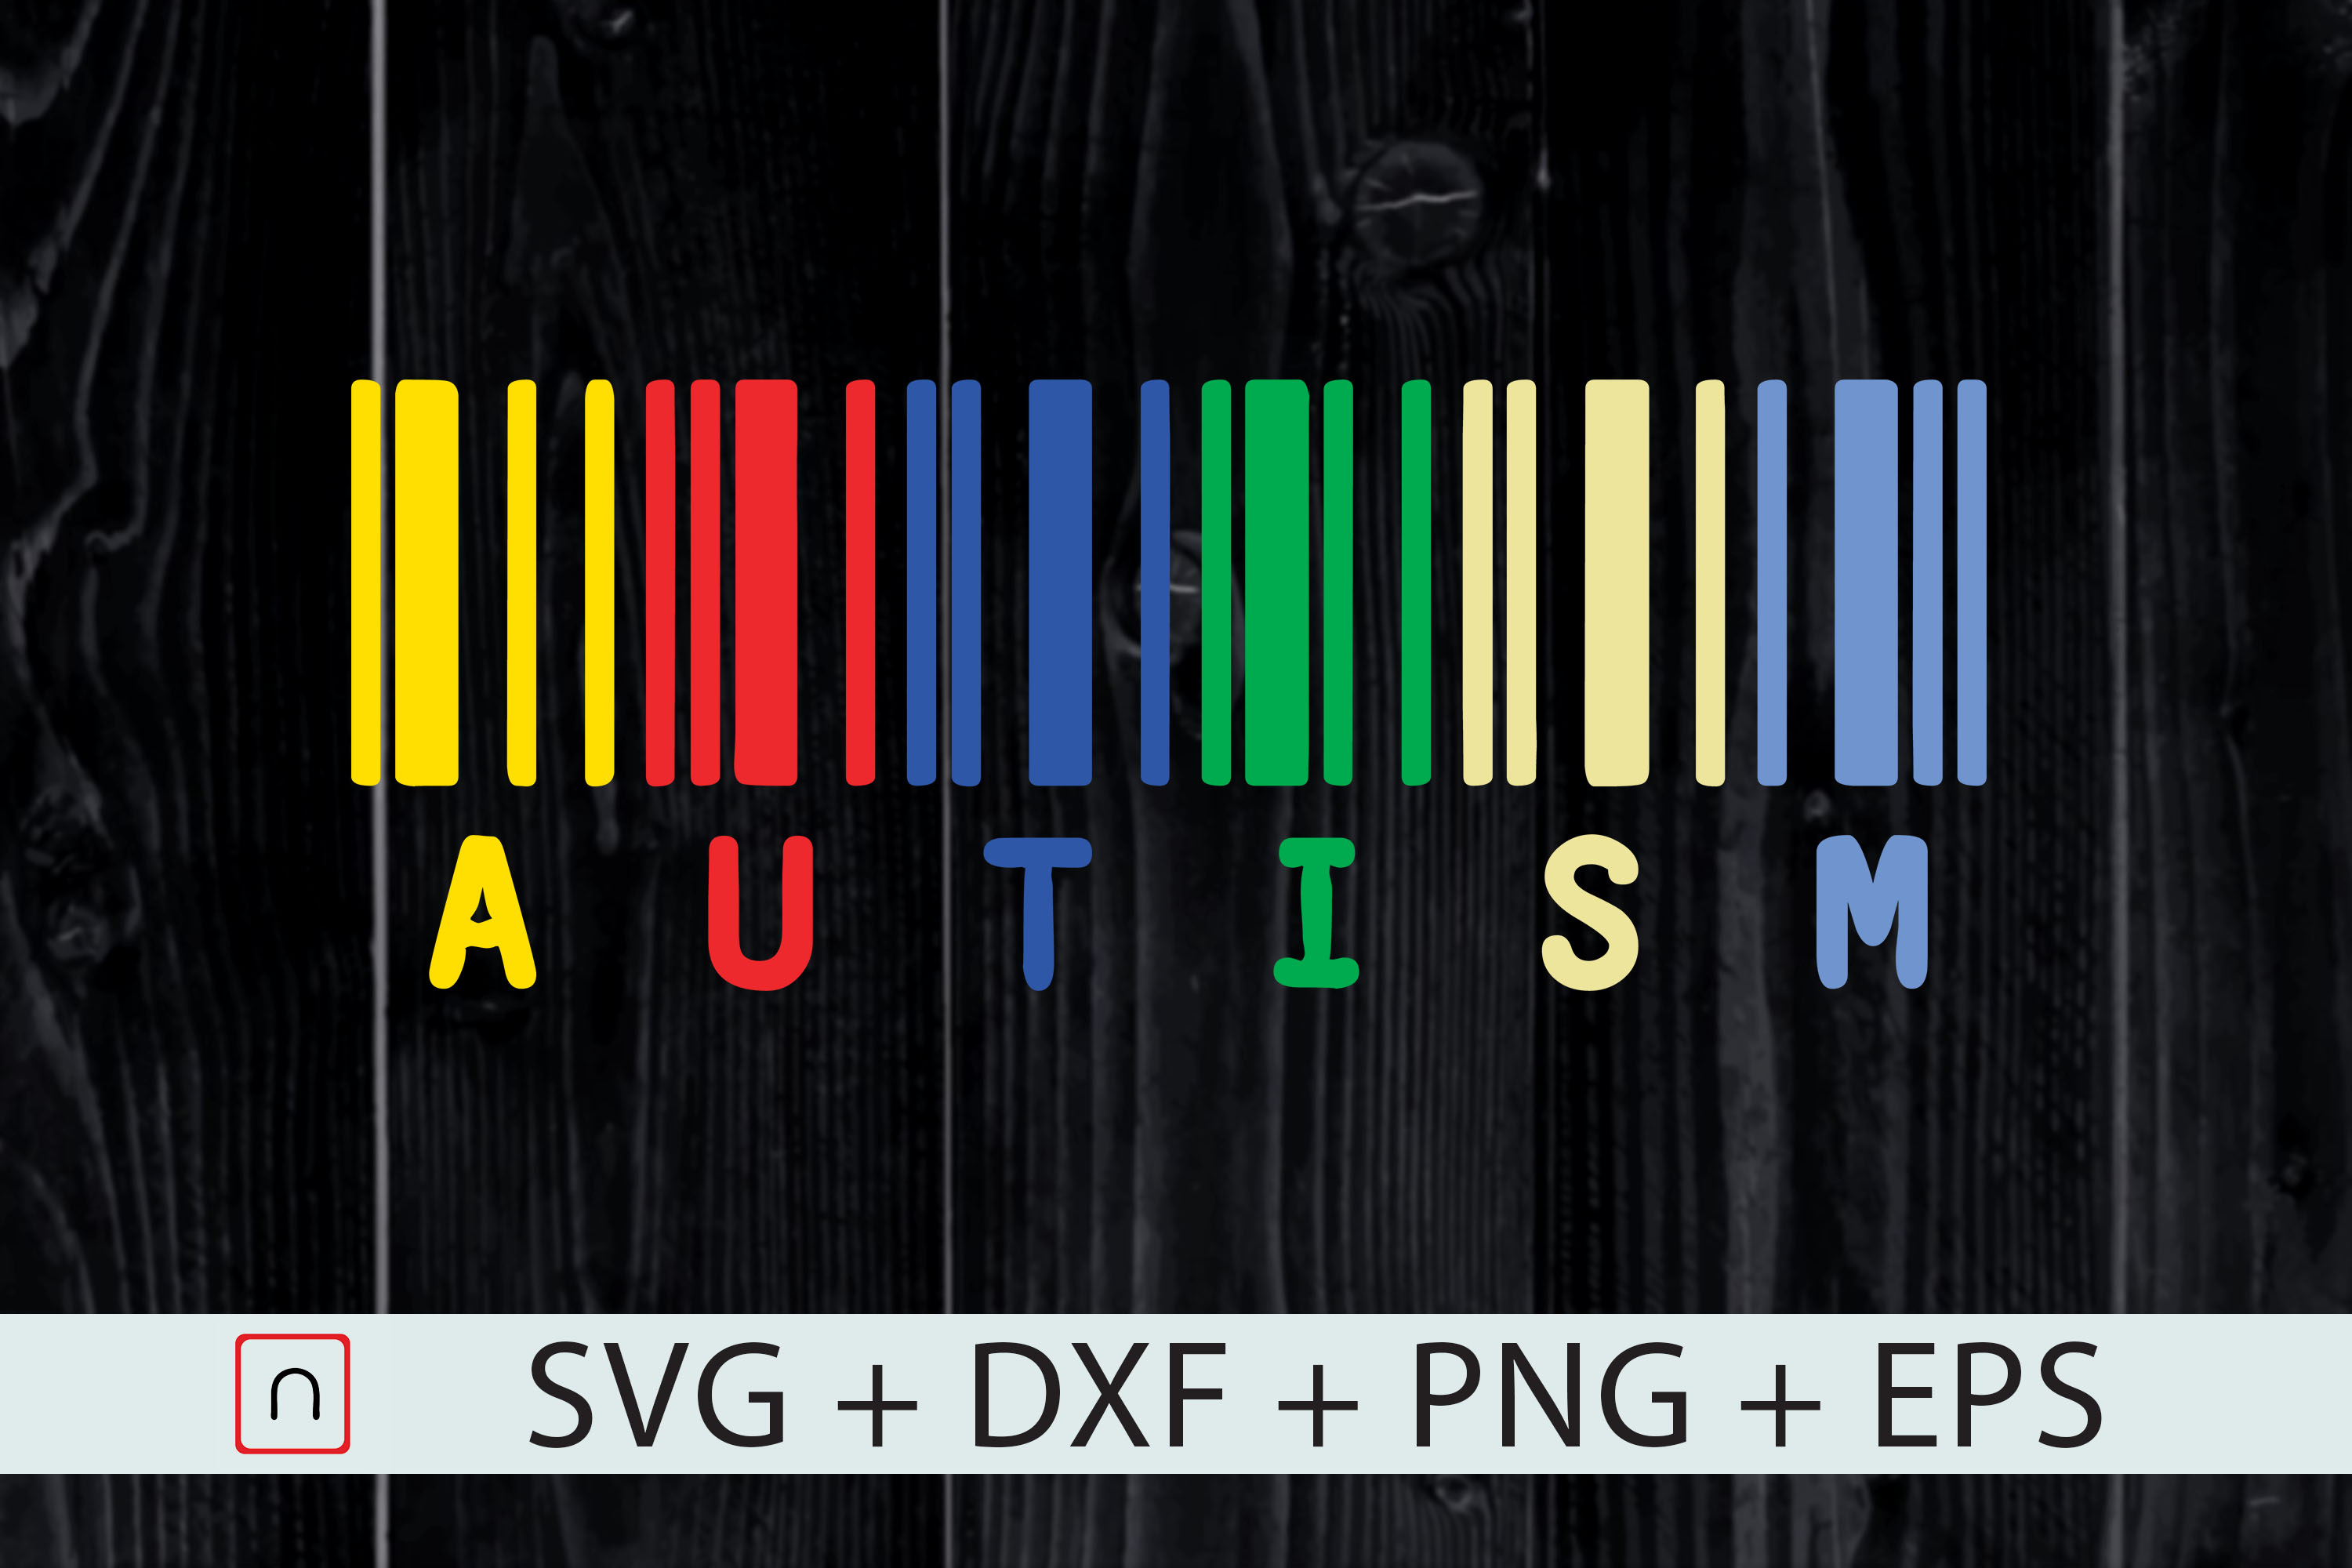 Download Free Autism Colorful Barcode Graphic By Novalia Creative Fabrica for Cricut Explore, Silhouette and other cutting machines.